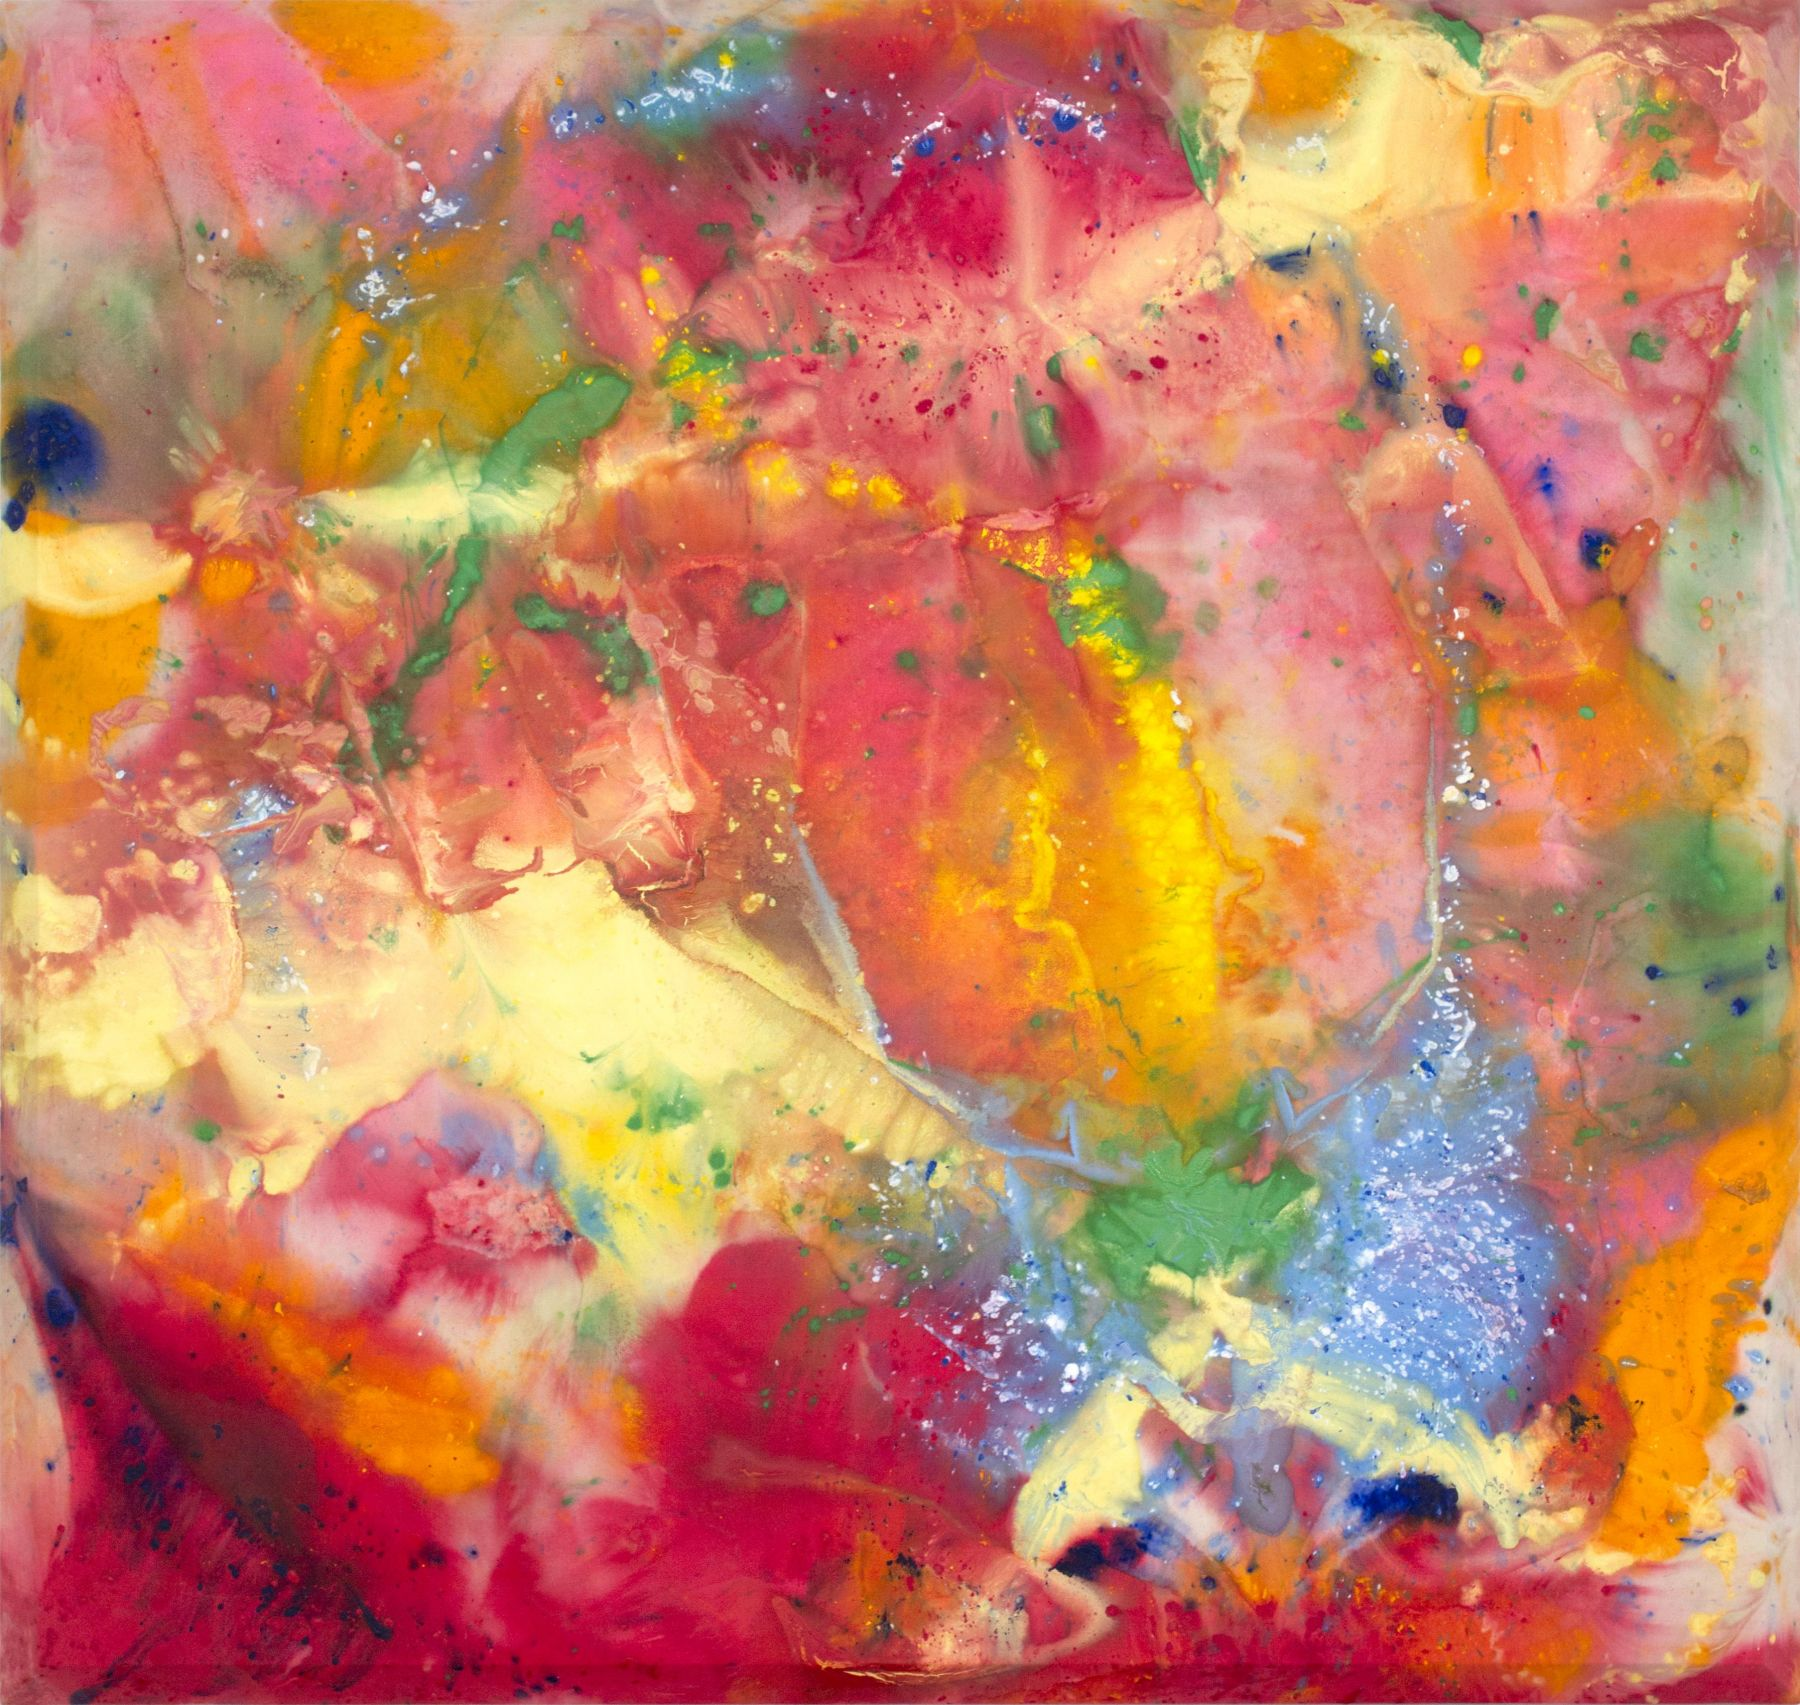 Sam Gilliam, Soft Melting, 1972